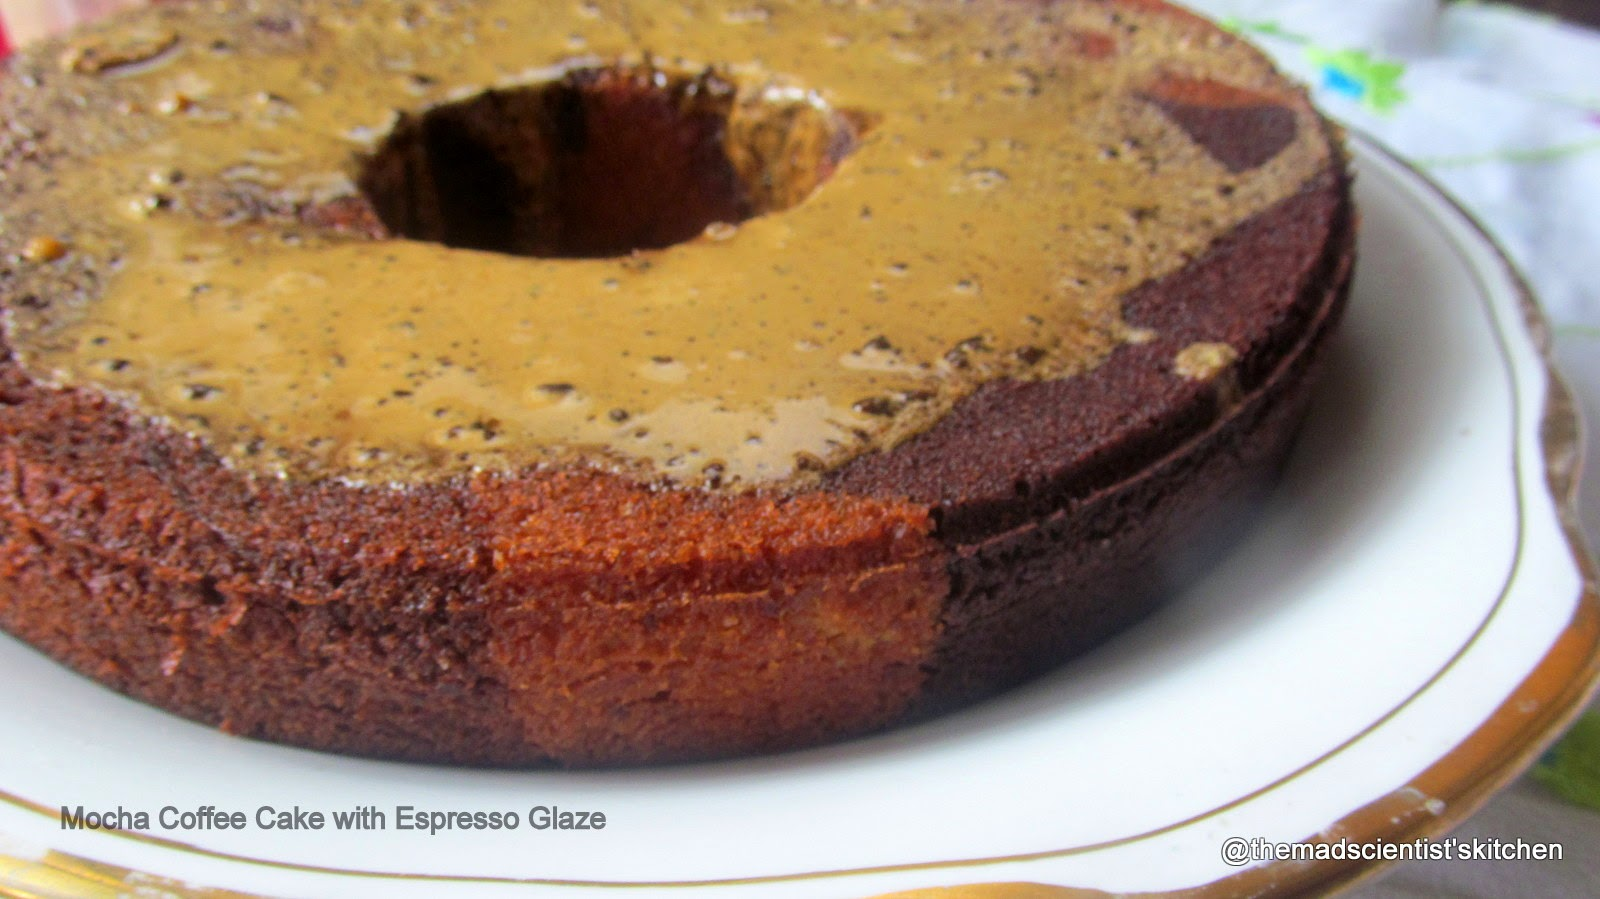 Mocha Coffee Cake with Espresso Glaze